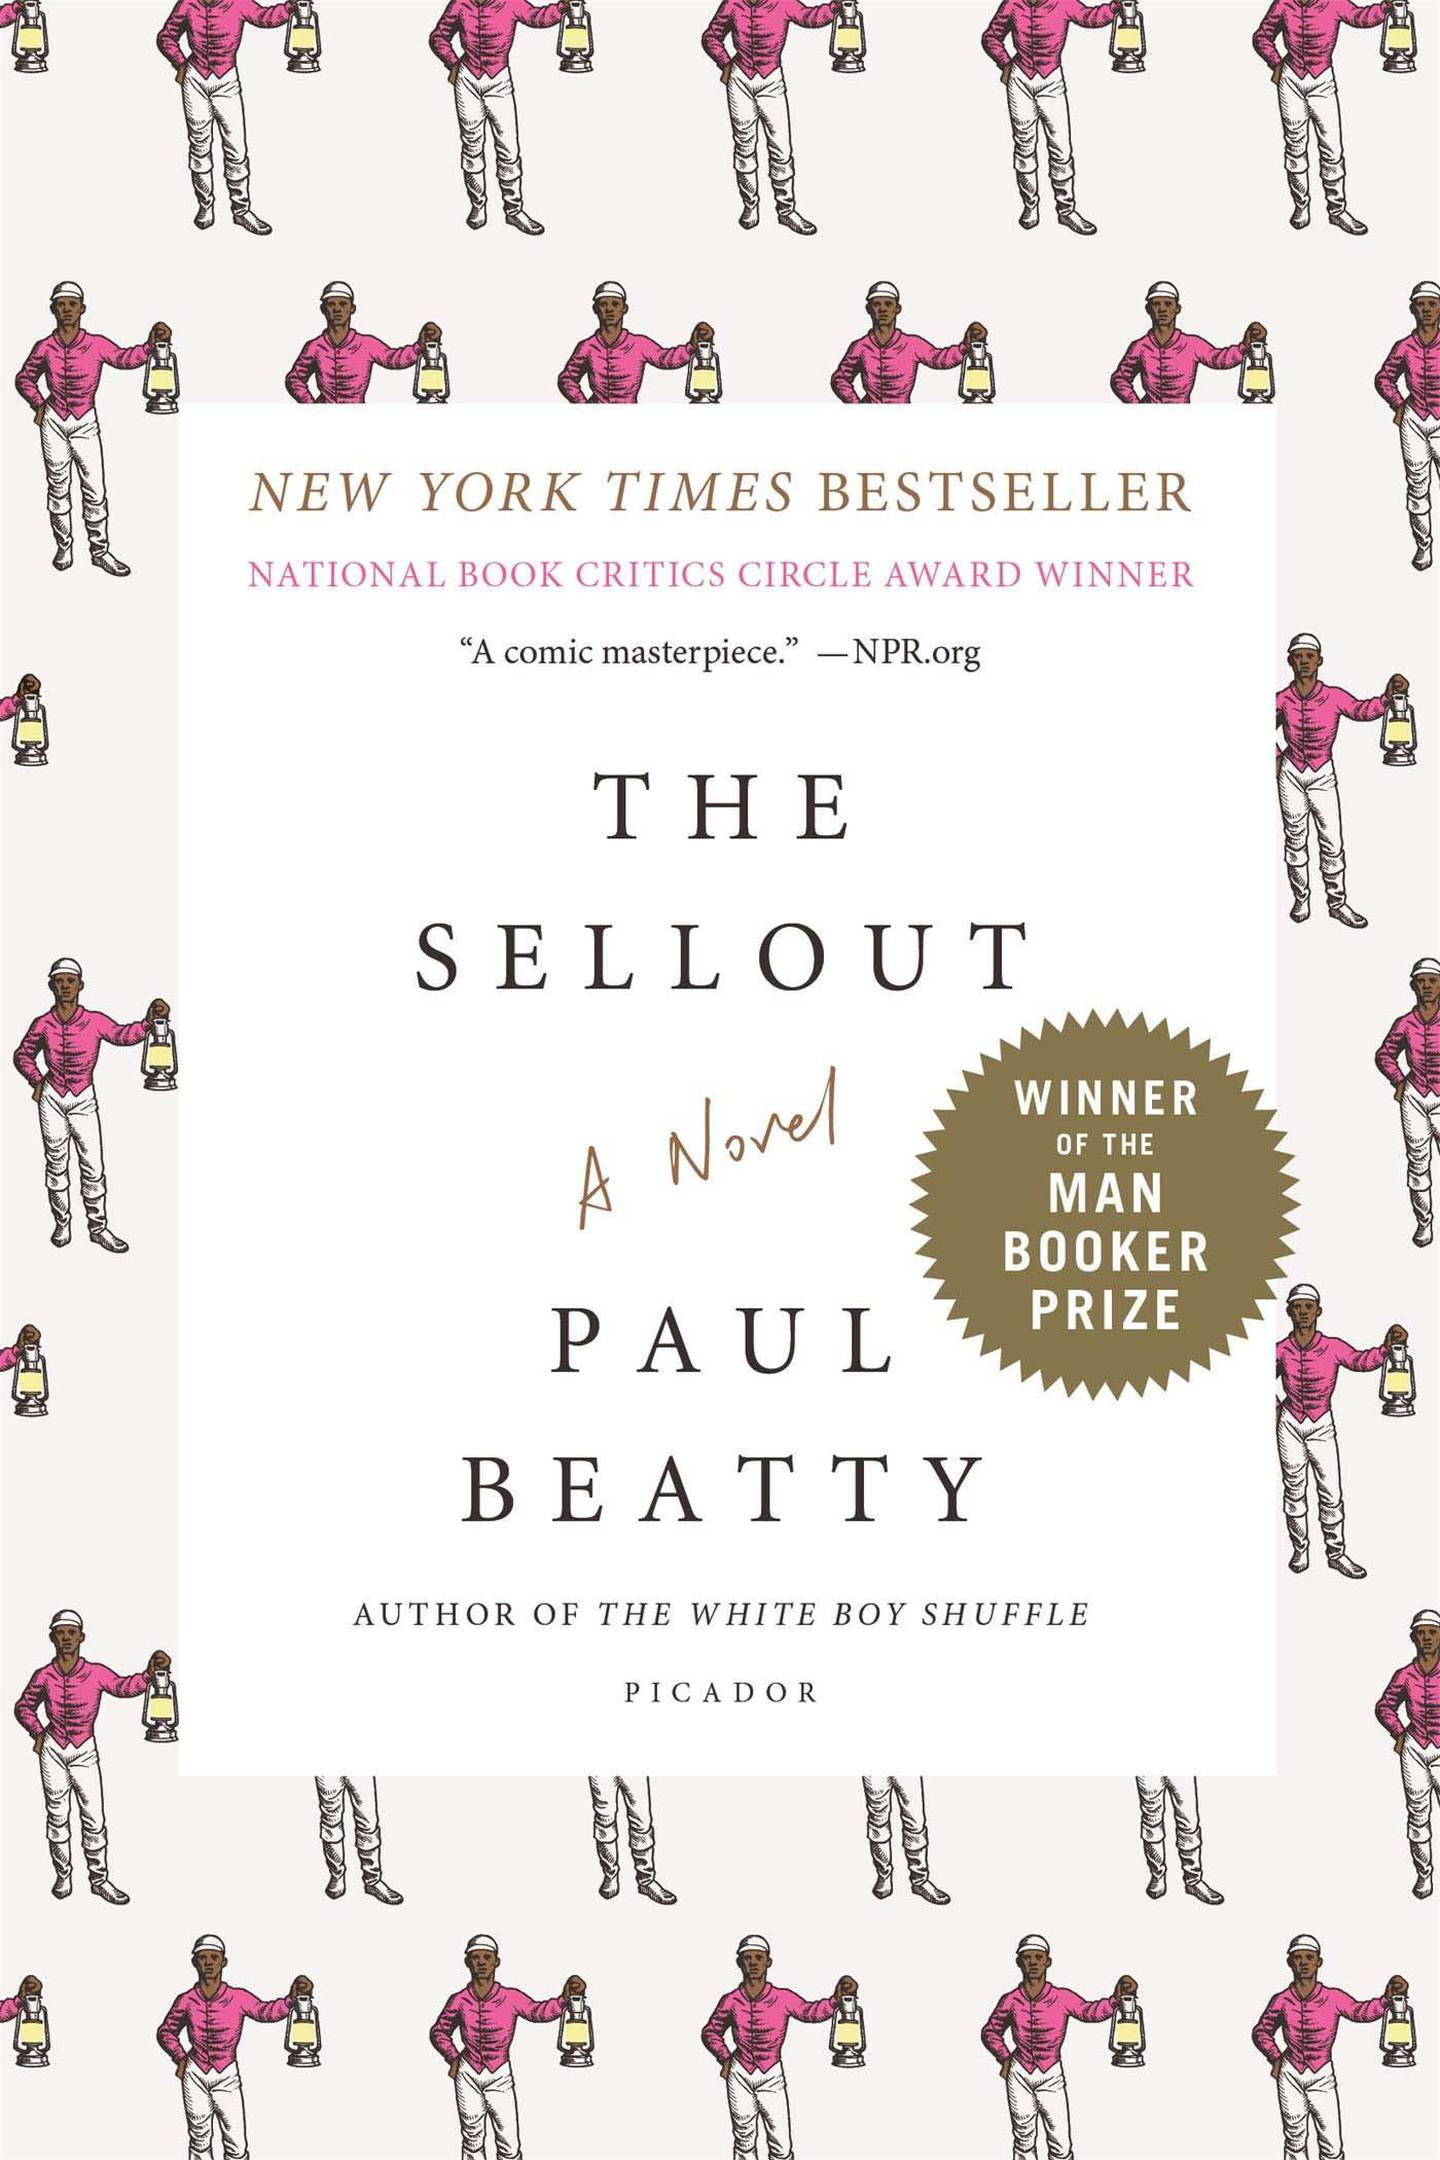 The Sellout by Paul Beatty. Courtesy Picador